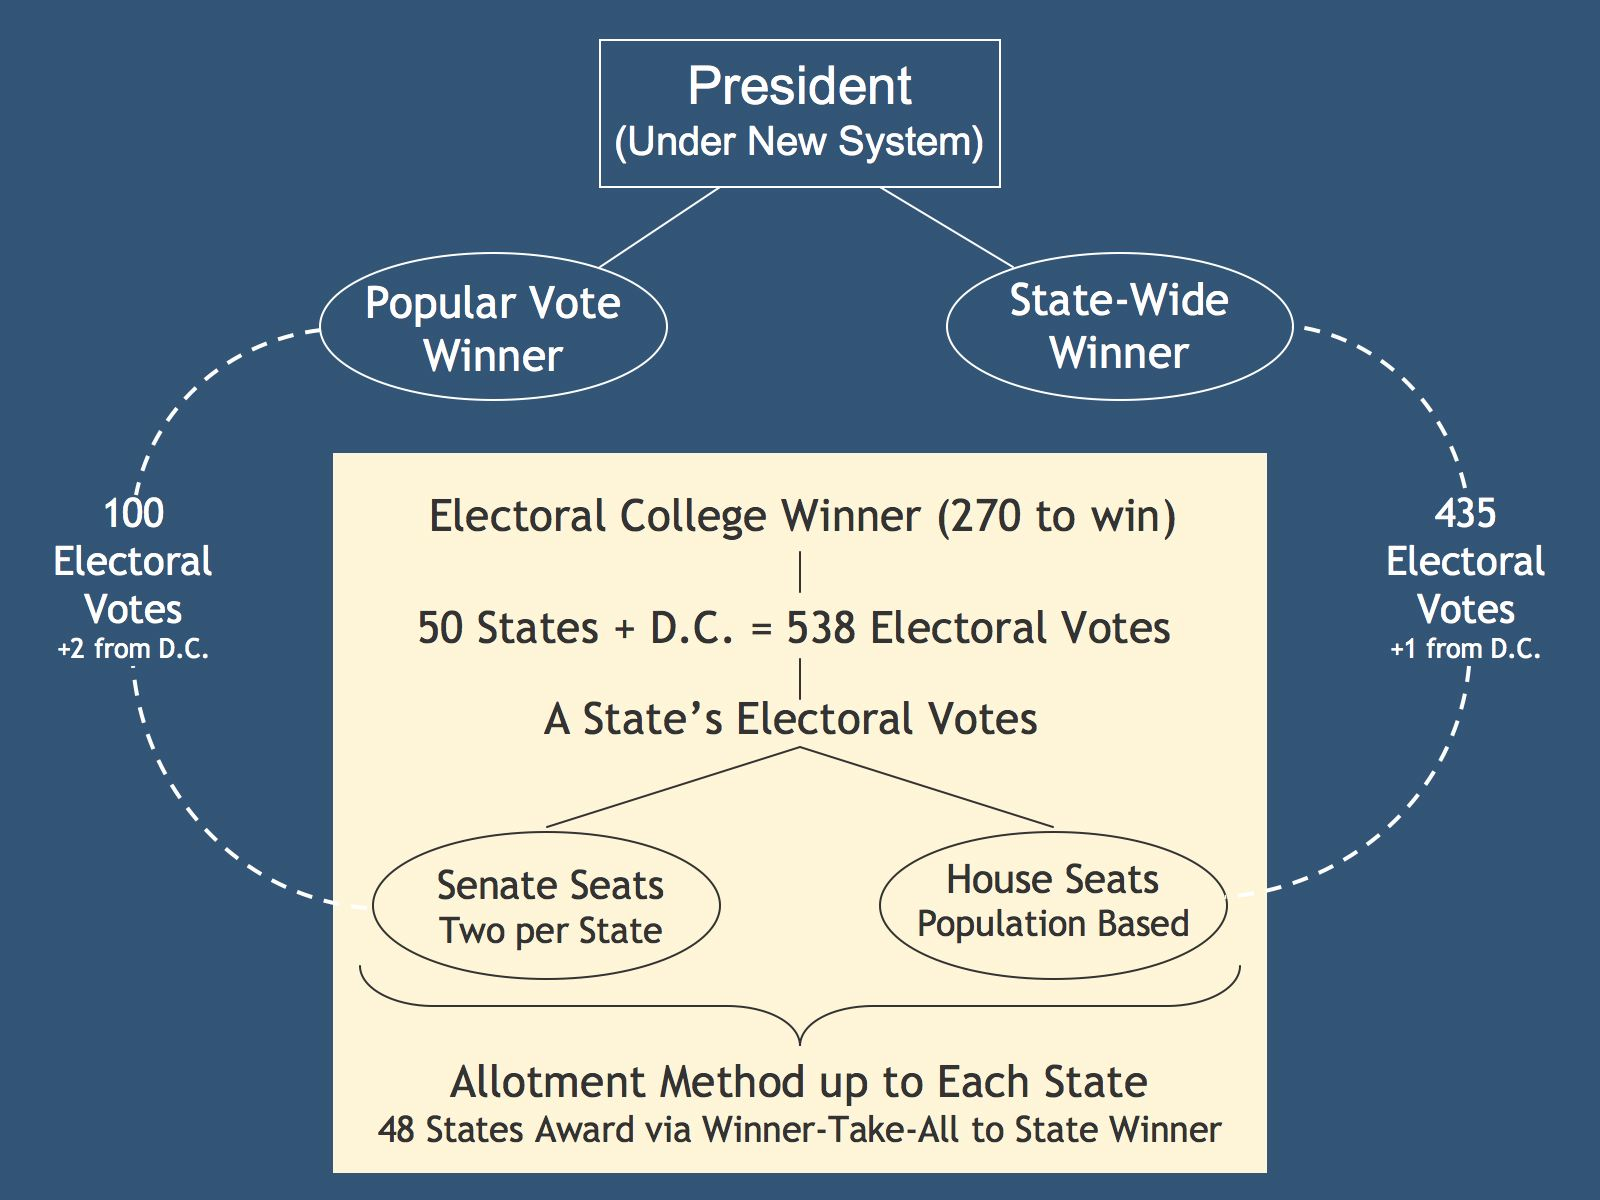 an in depth description of how the electoral college system works in us presidential elections